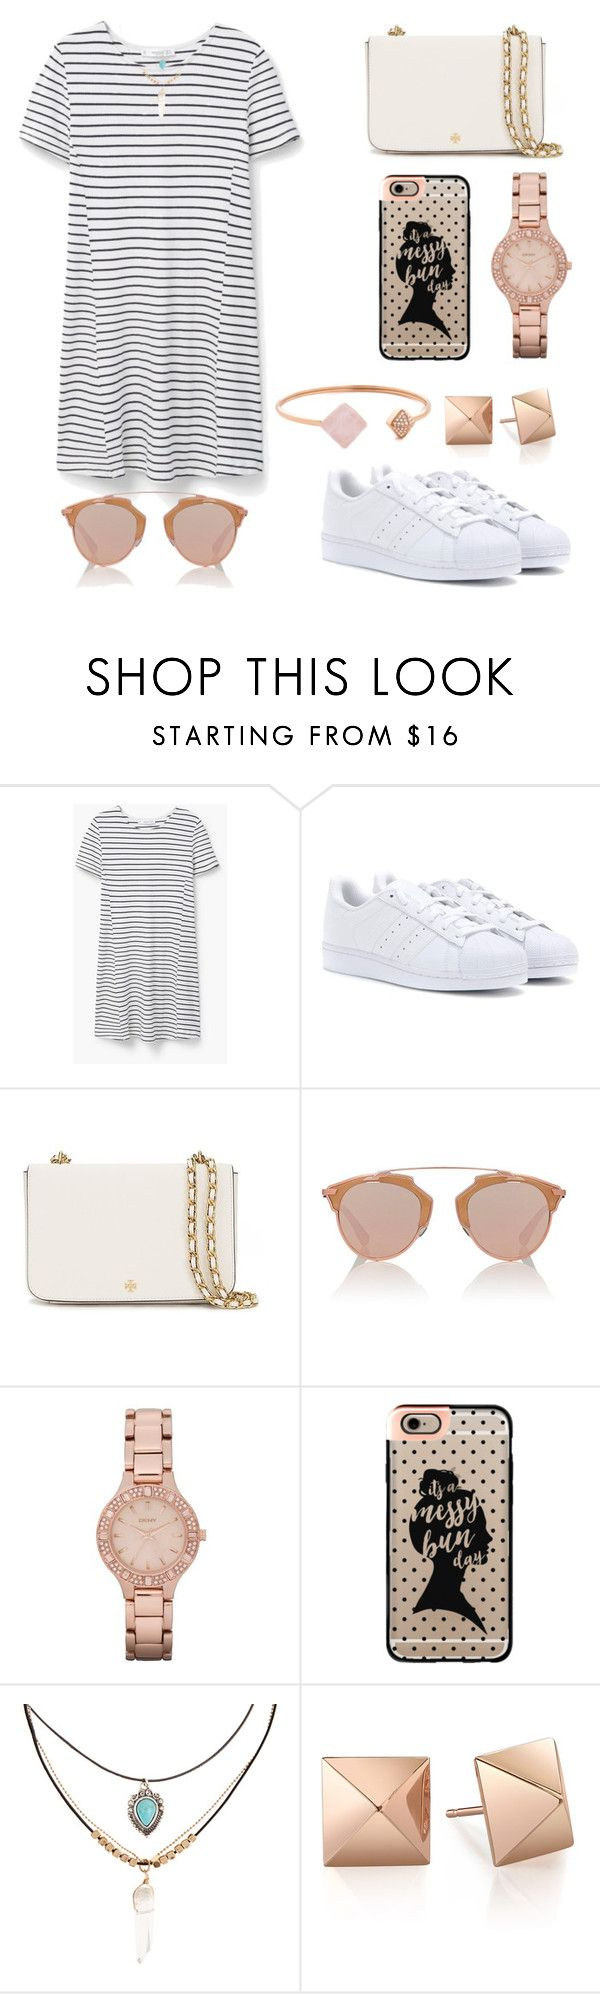 """Untitled #85"" by aly267 on Polyvore featuring MANGO, adidas, Tory Burch, Christian Dior, DKNY, Casetify, Accessorize and Michael Kors"